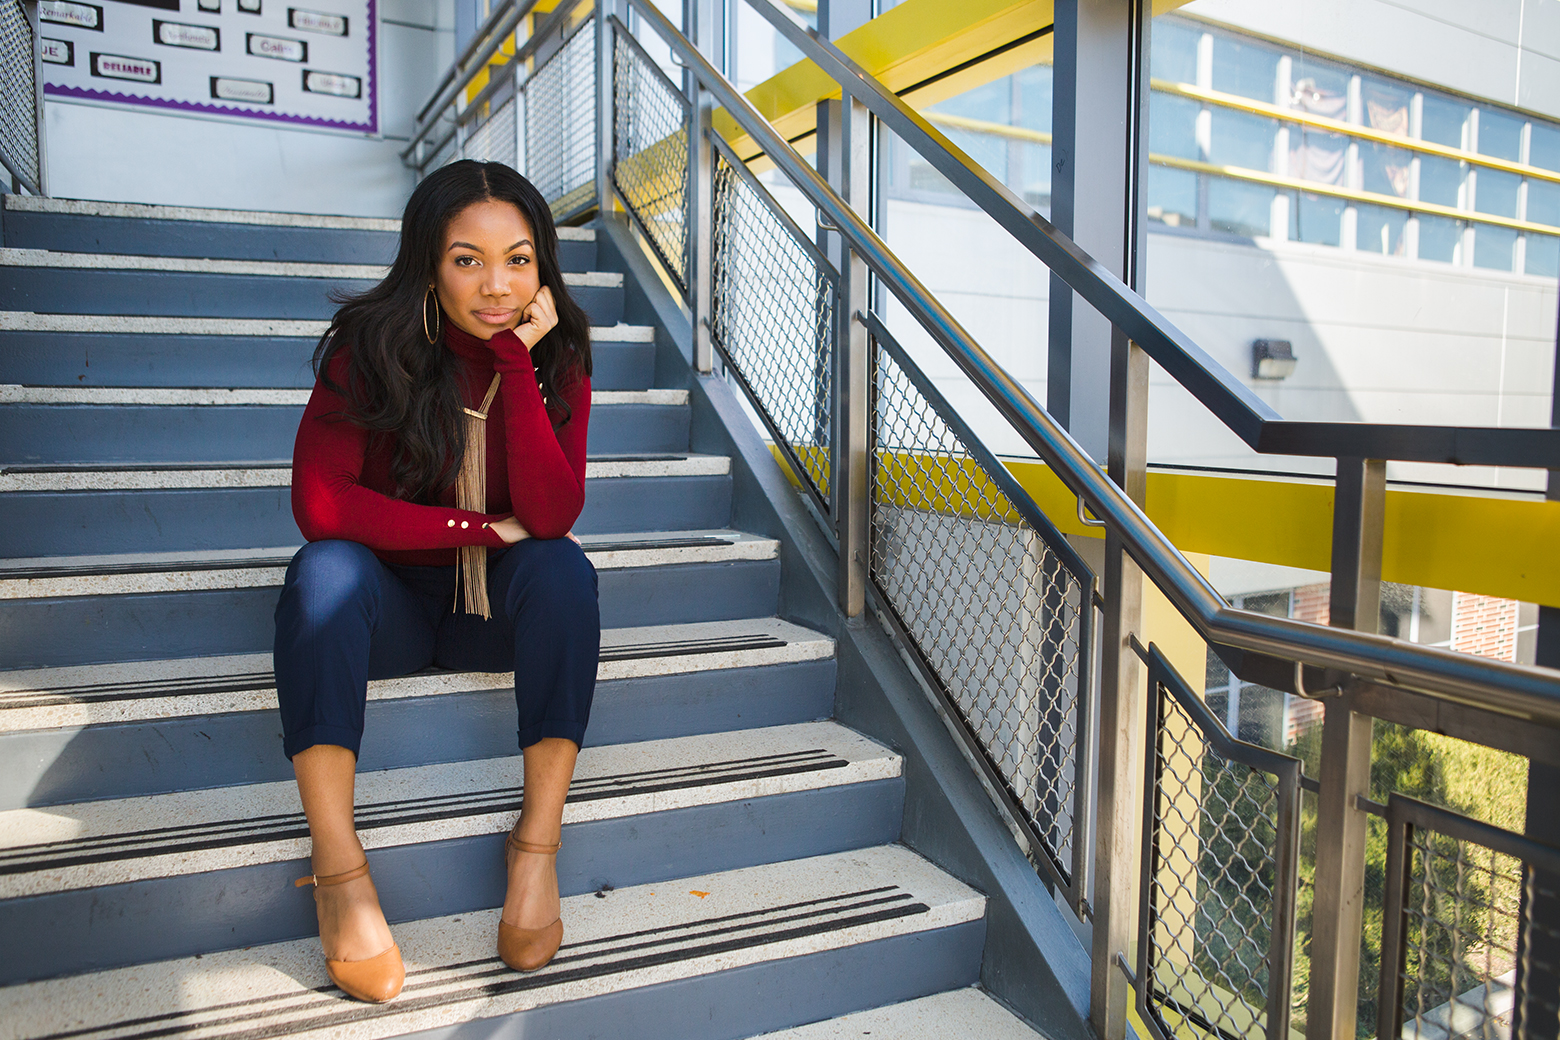 A young woman with long black hair wearing a red shirt, blue pants, and beige shoes sitting in a stairwell next to large windows looking out onto a building in the sun.